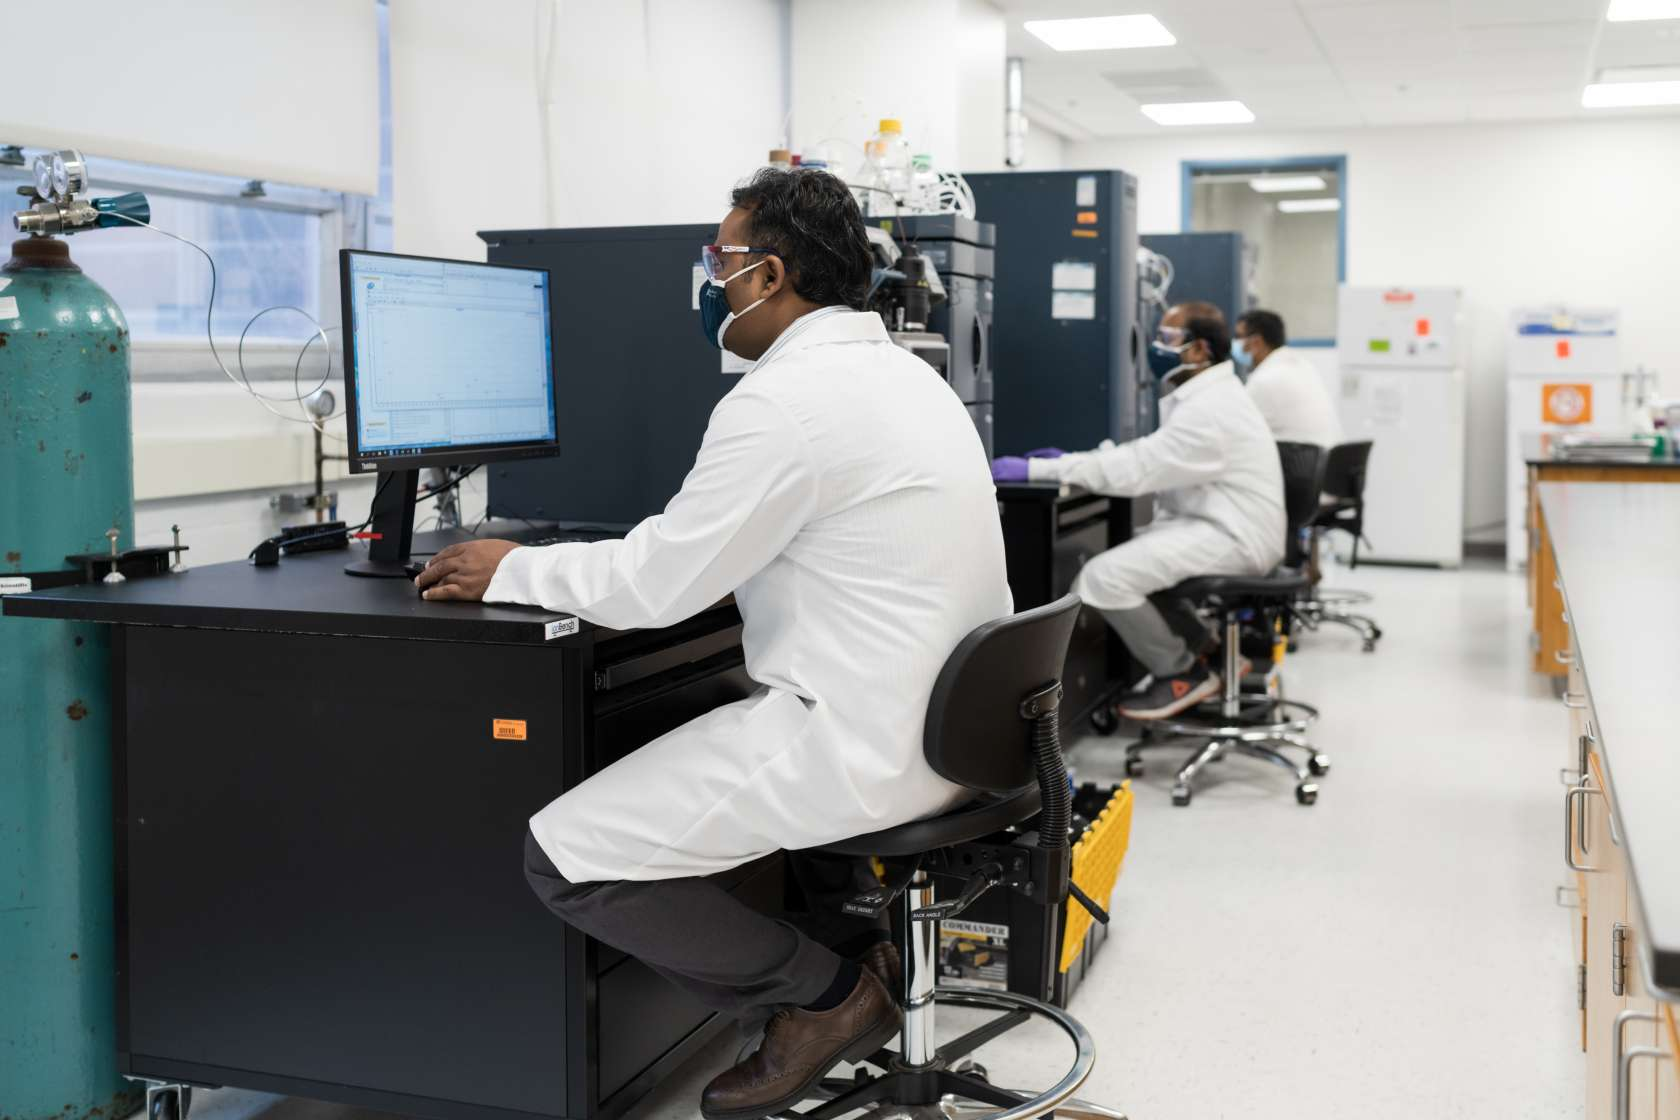 pharmacy lab with staff sitting at computers